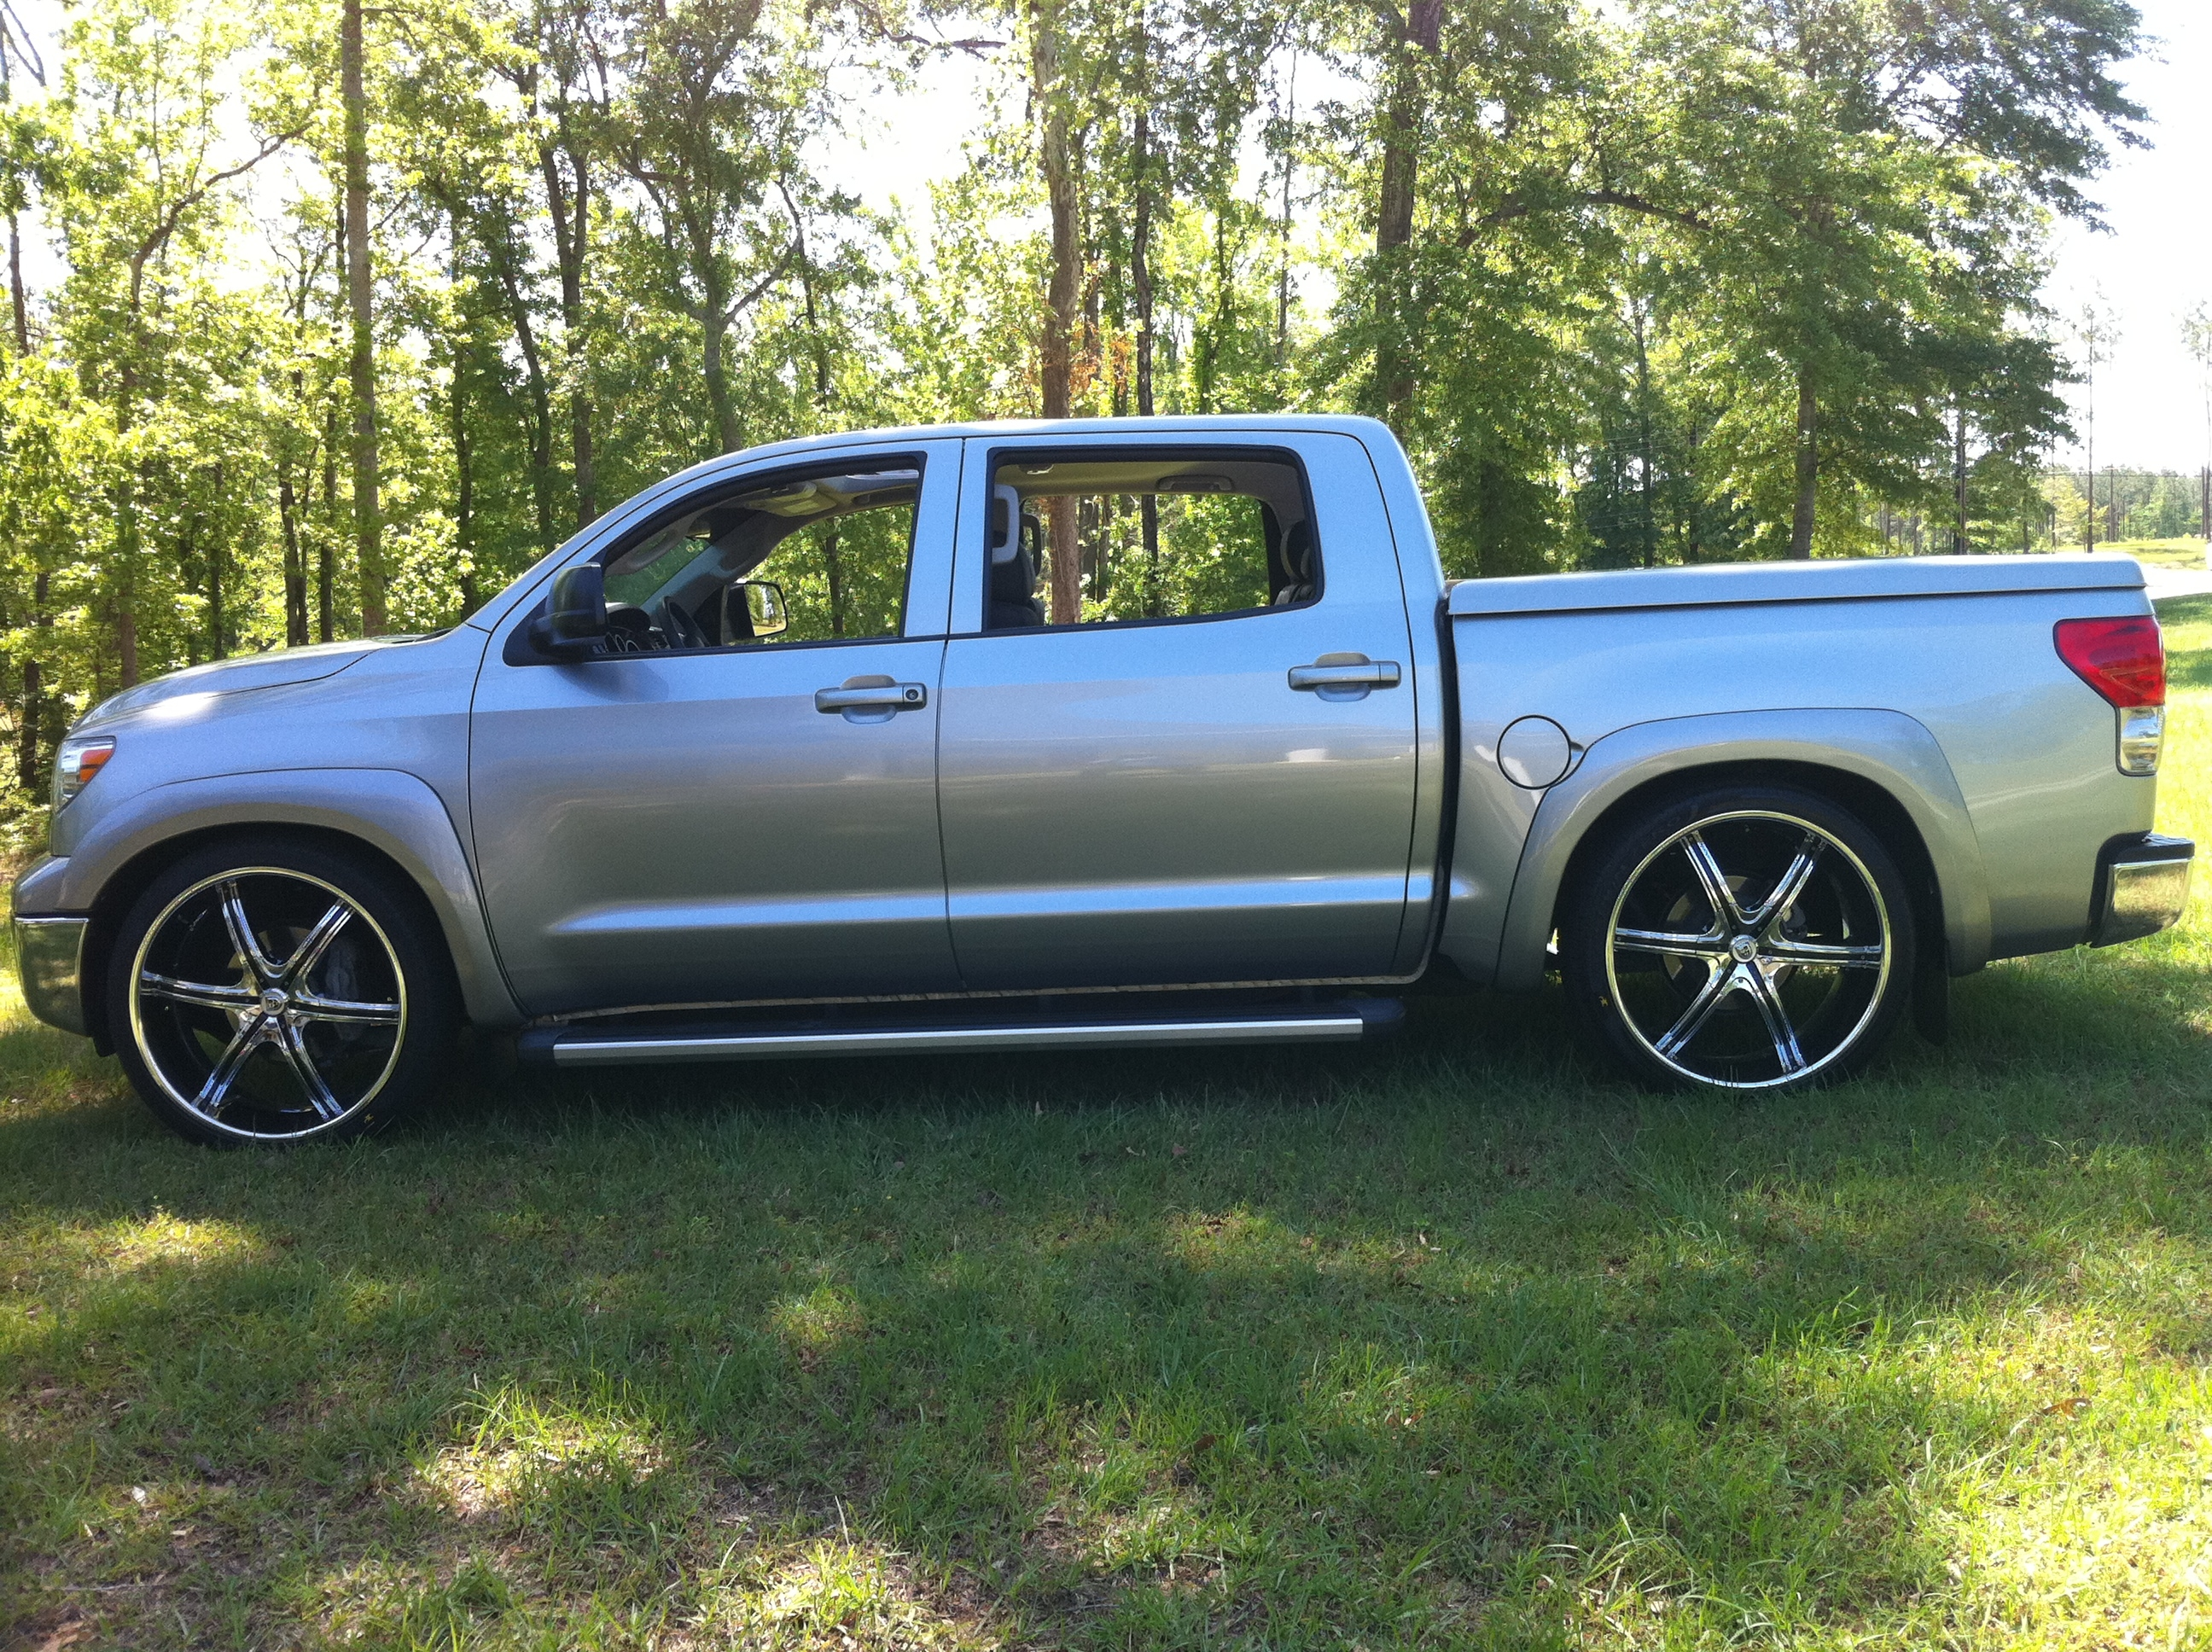 kedice 2009 toyota tundra crewmaxsr5 specs photos modification info at cardomain. Black Bedroom Furniture Sets. Home Design Ideas